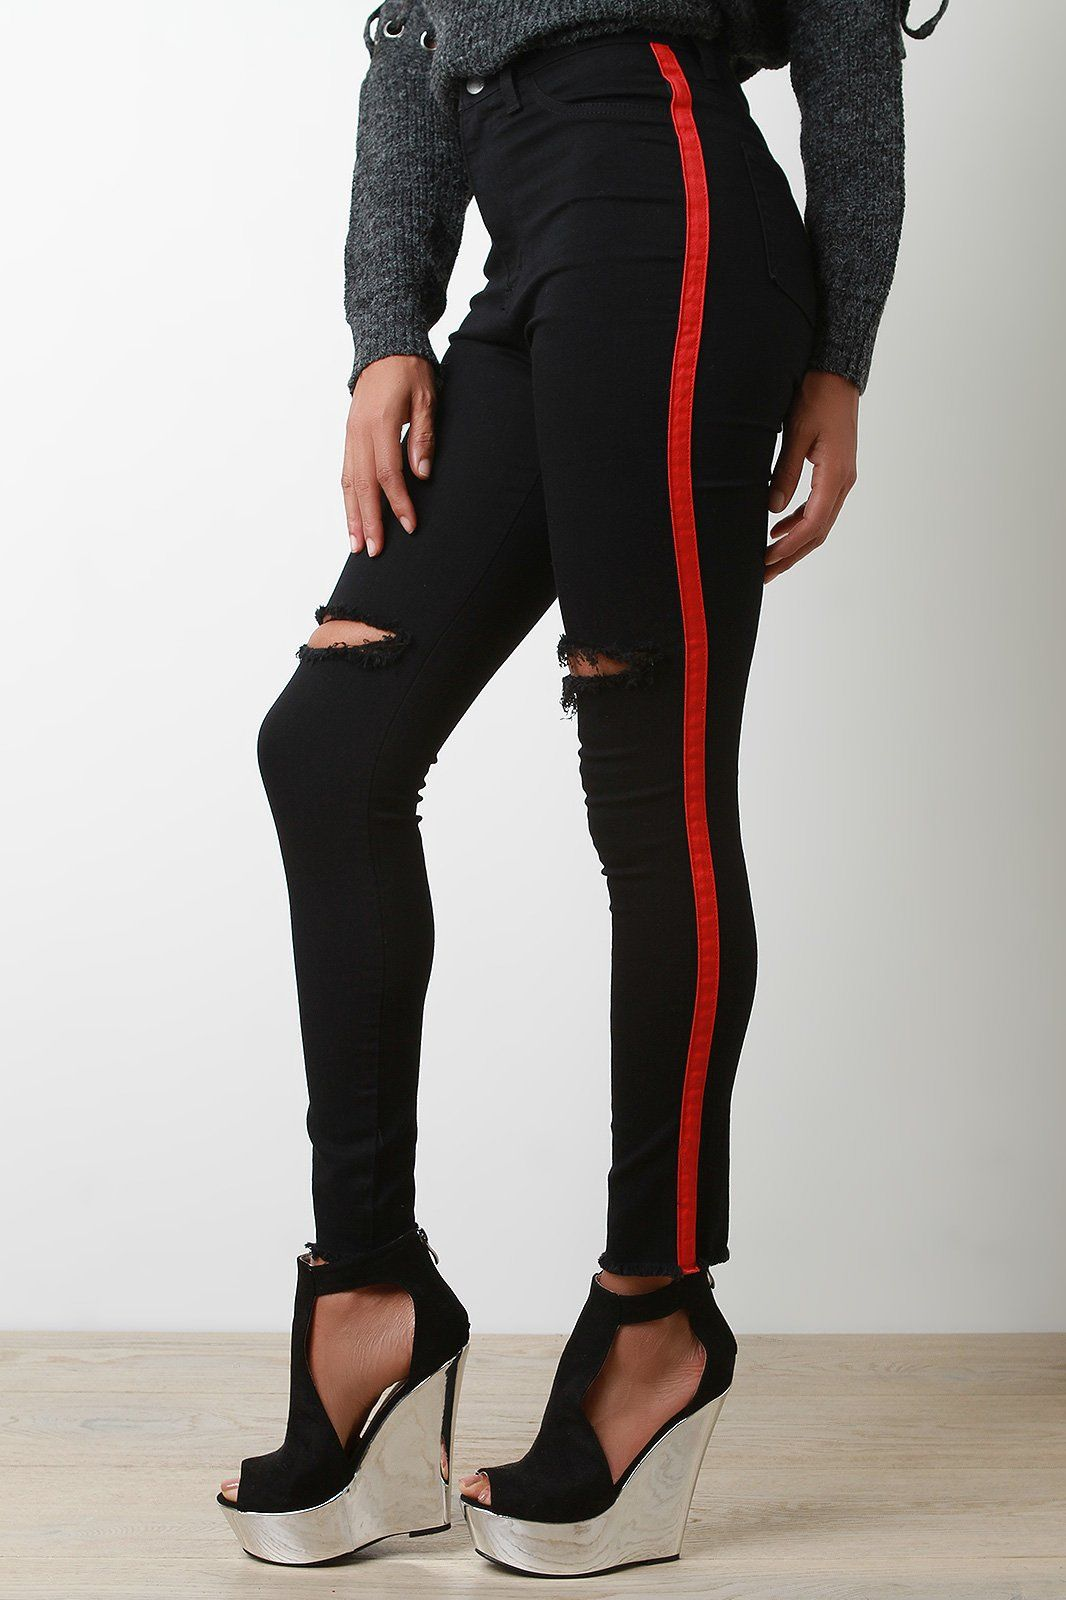 novel style good texture beautiful in colour These high waist jeans feature distressed stretch denim ...